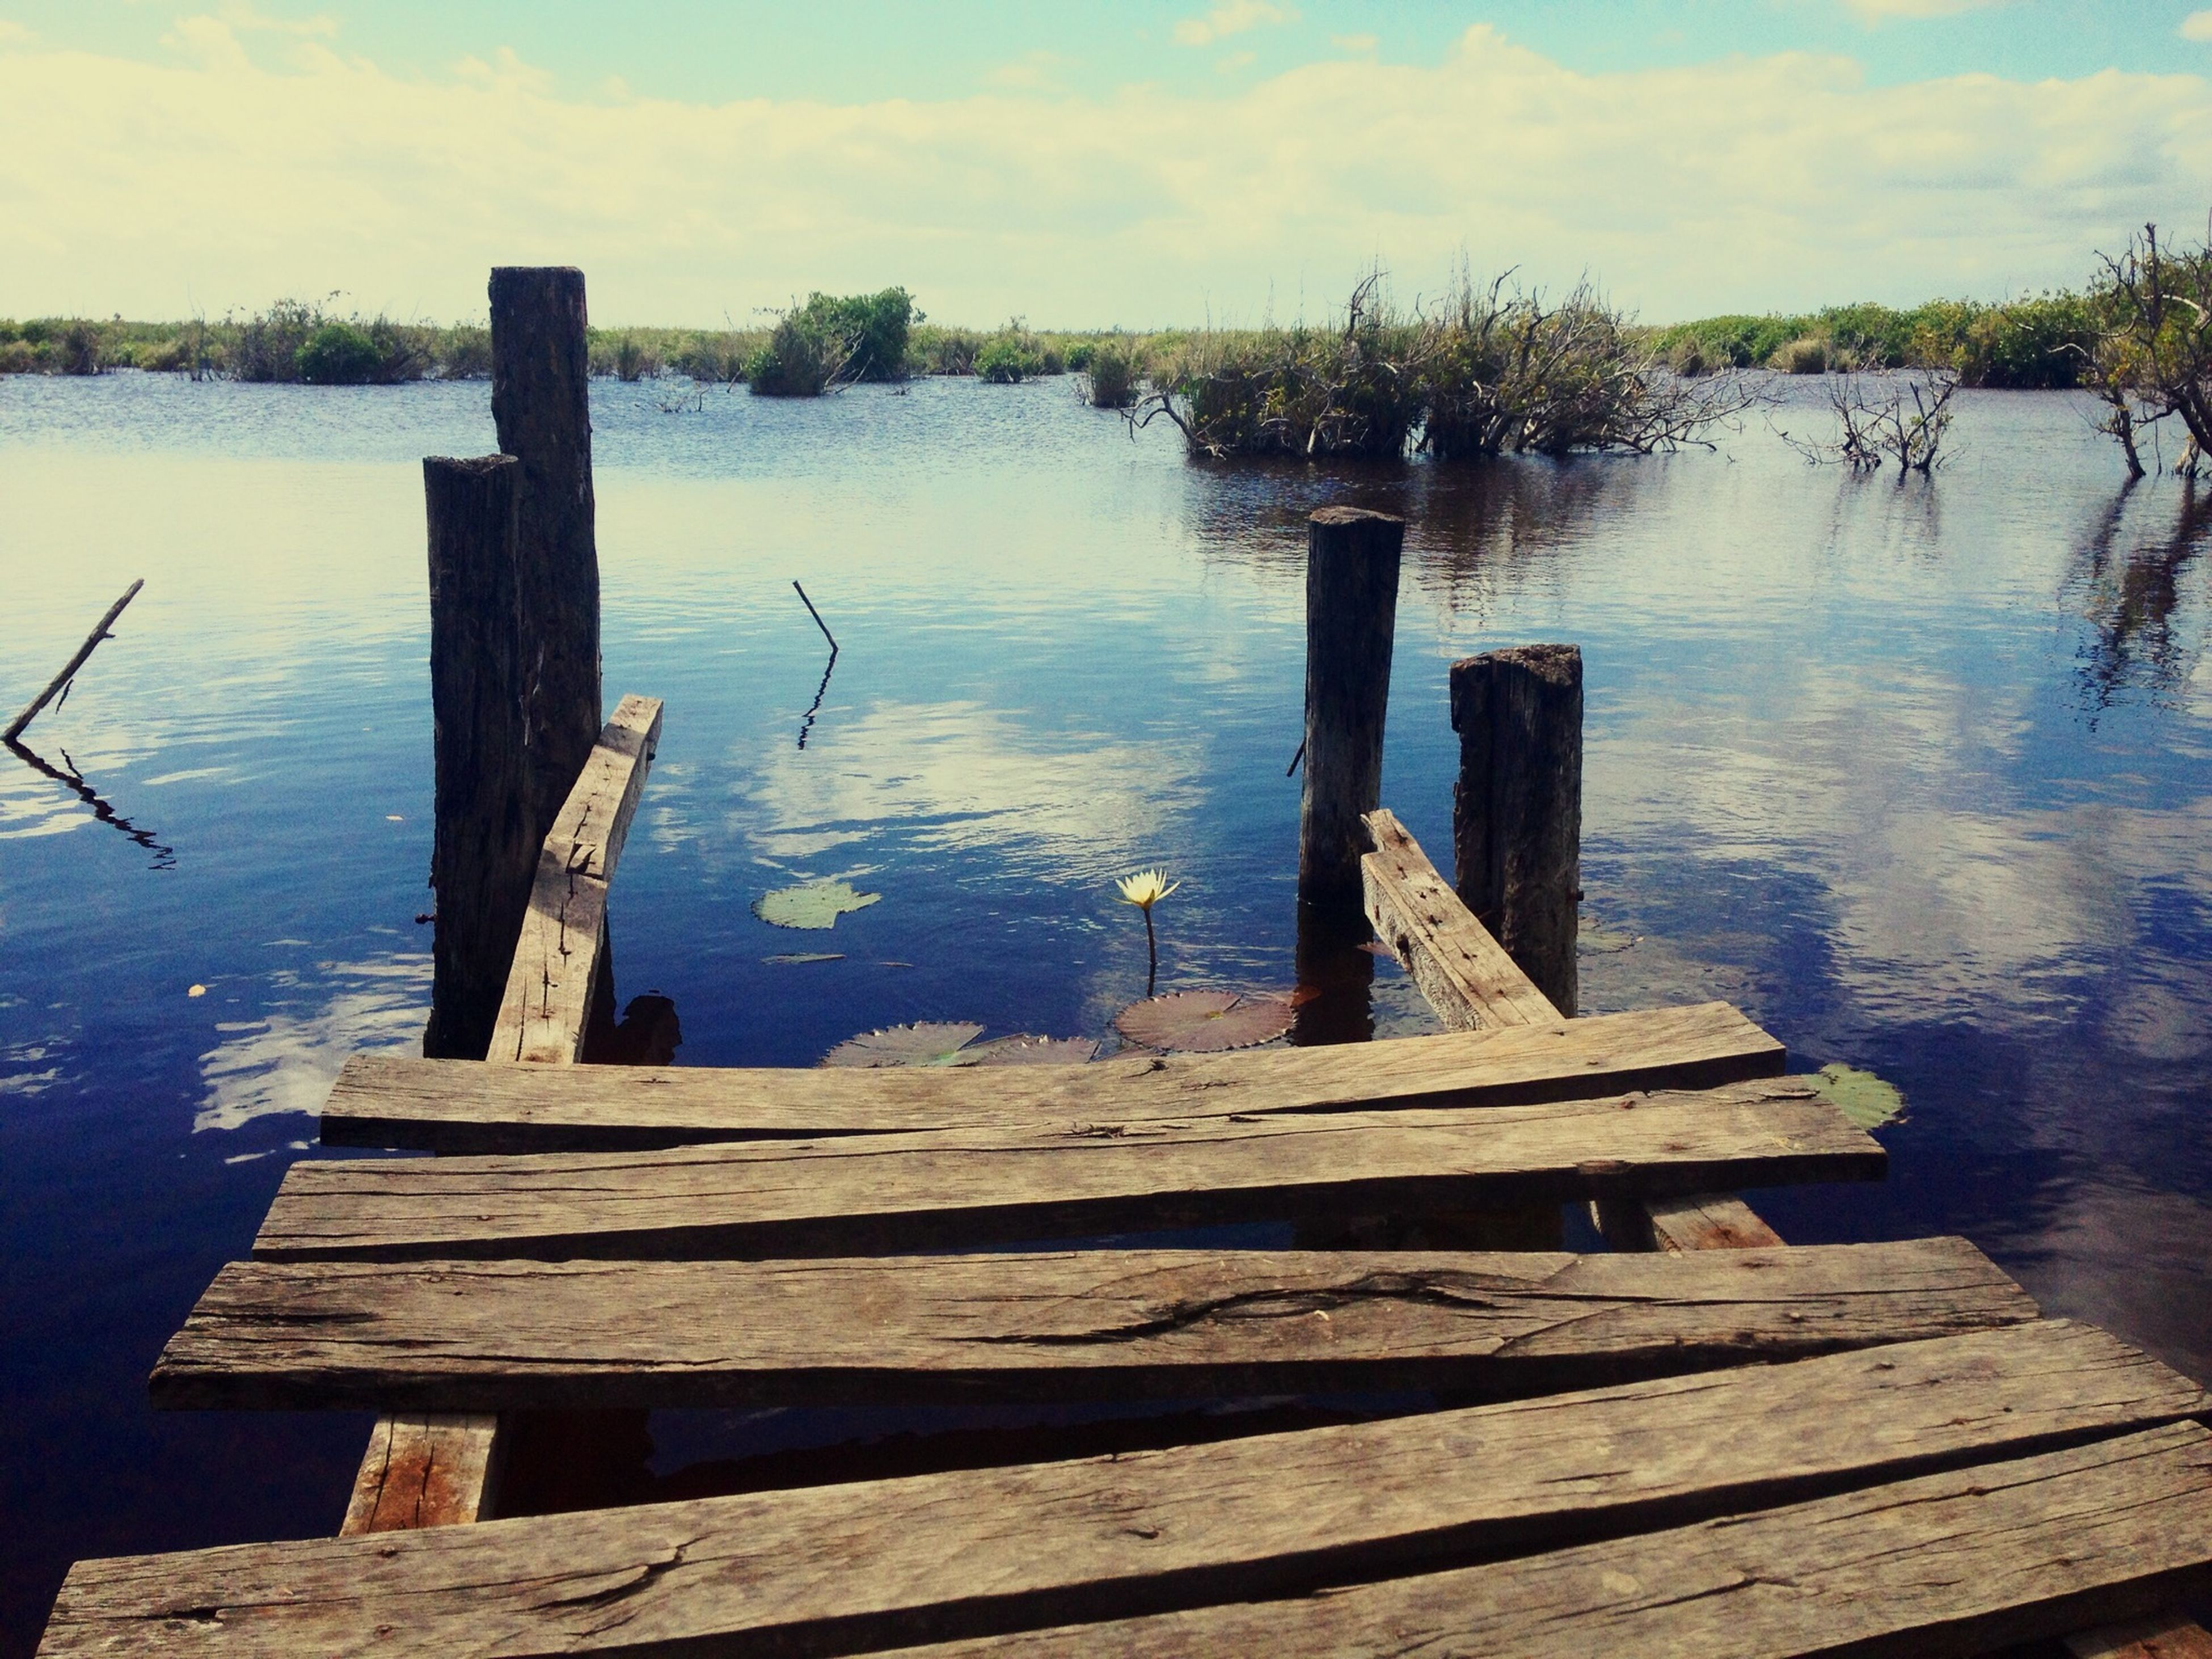 water, lake, pier, wood - material, reflection, jetty, tranquility, sky, tranquil scene, wood, built structure, wooden, nature, river, scenics, day, waterfront, outdoors, the way forward, no people